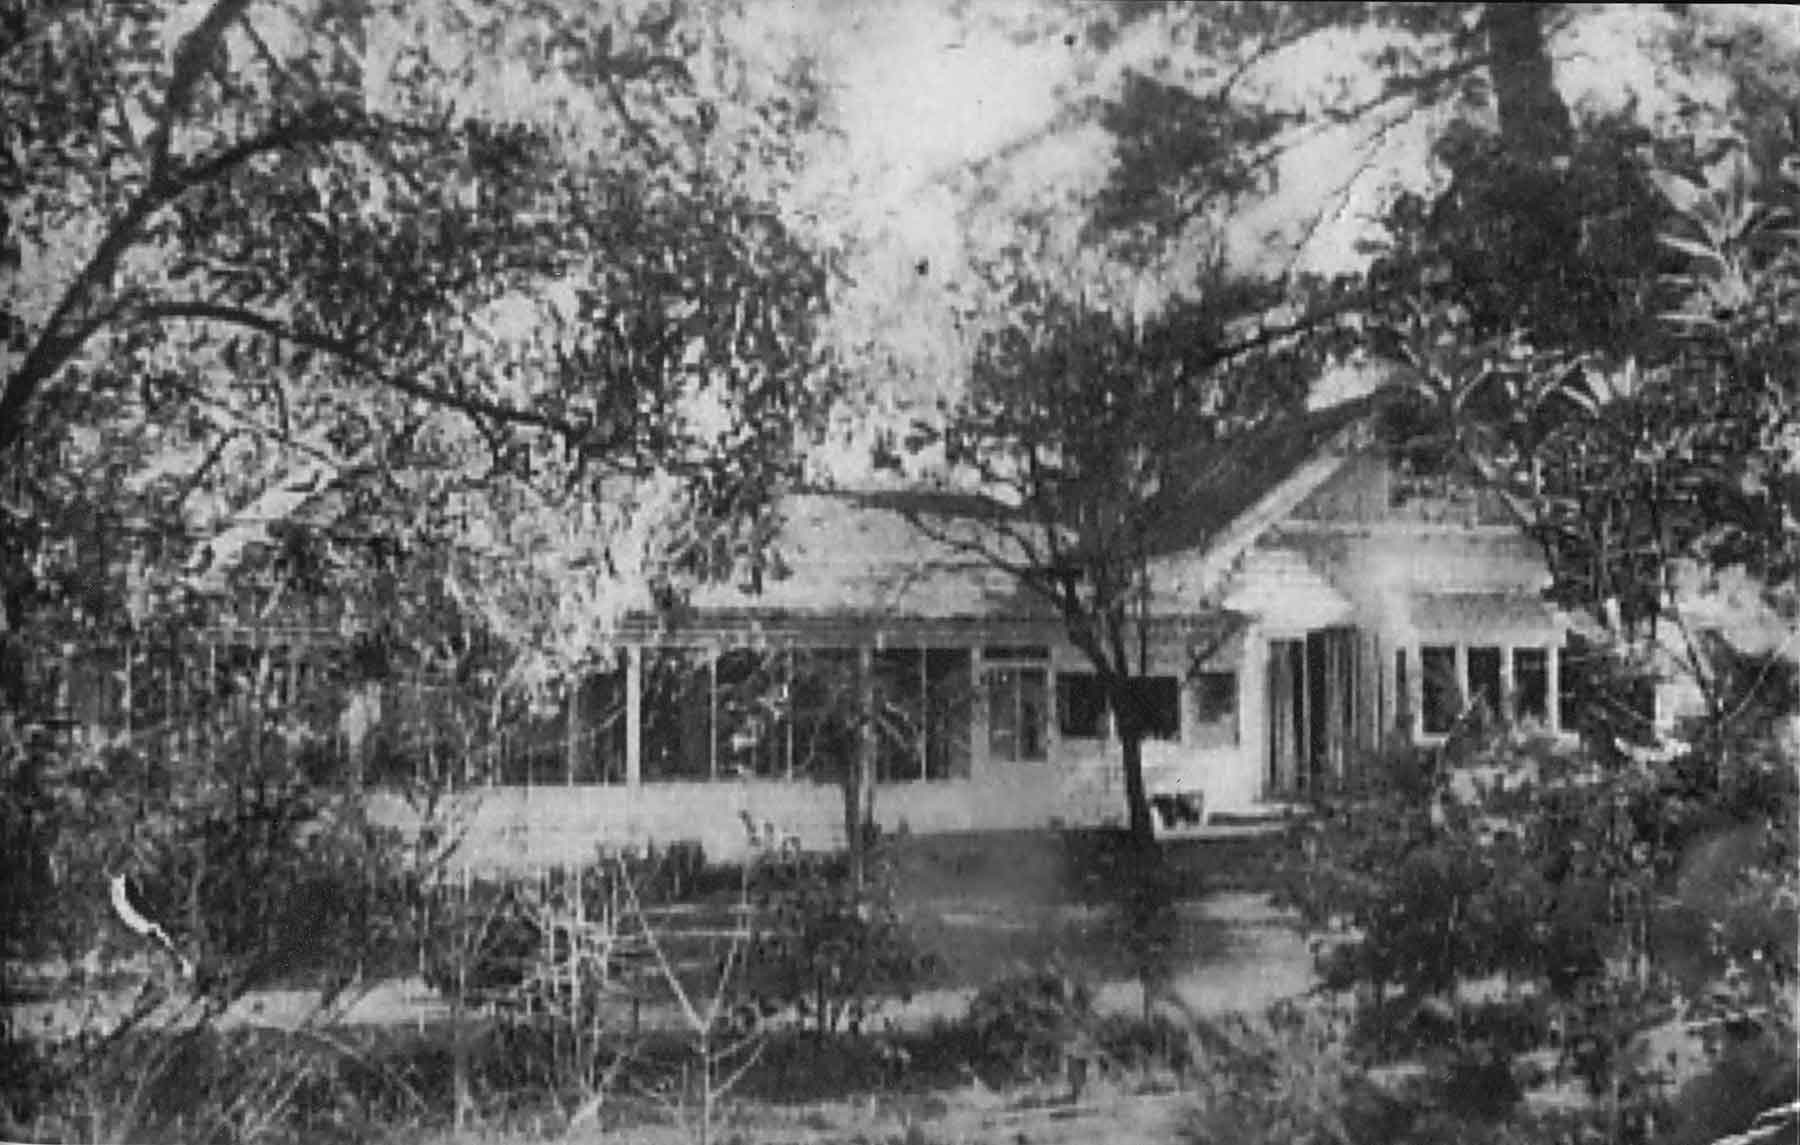 Pine Trees in 1952 - side view of the main house